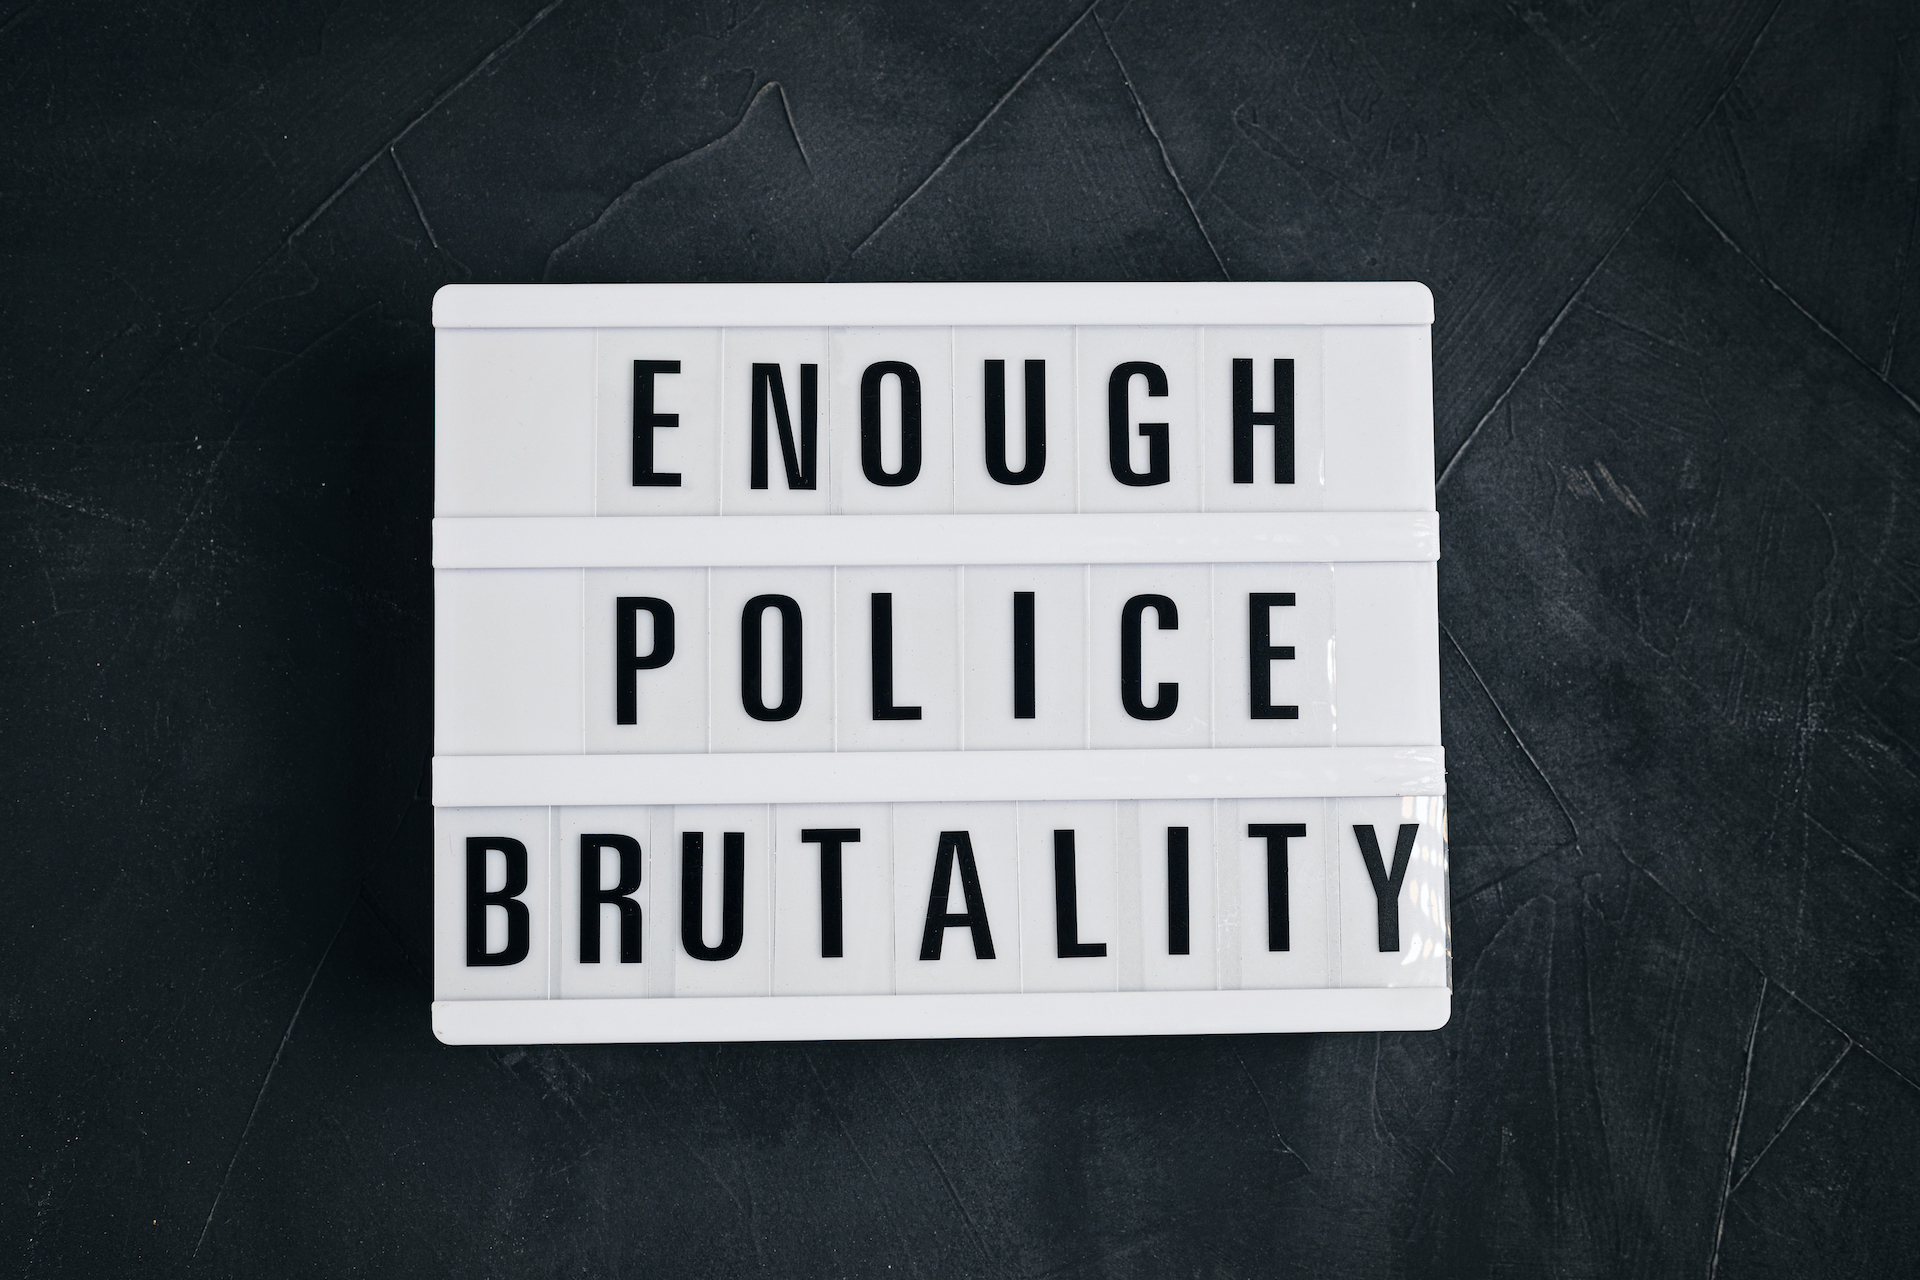 enough police brutality - Personal Injury Attorney in Nashville - Wrongful Death Attorney, Truck Accident Lawyer, Car Accident Lawyer, and more | Meyers Injury Law